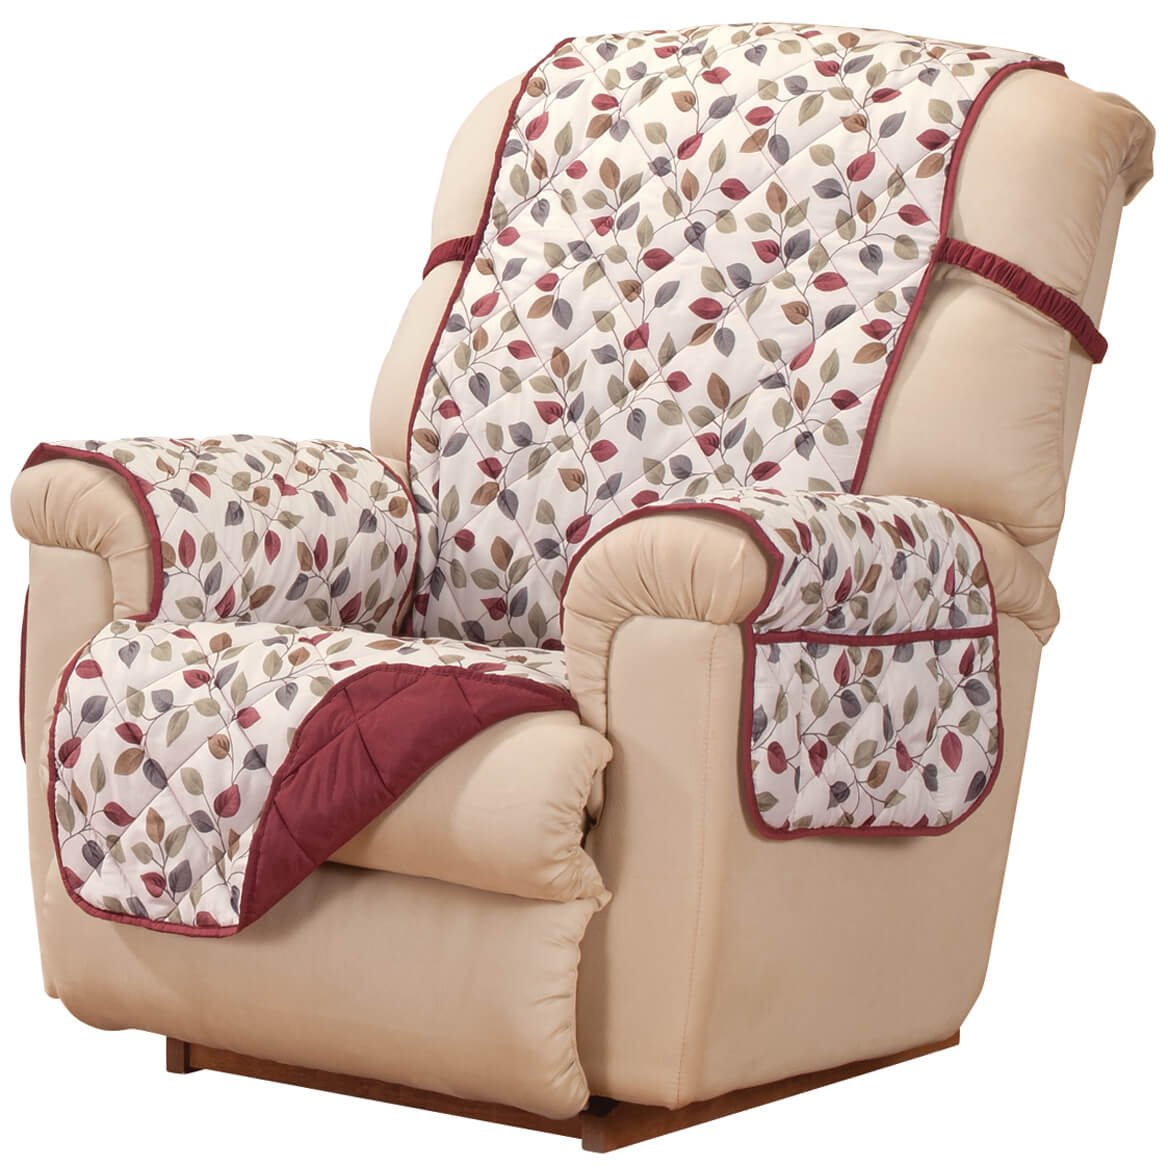 Innovative Textile Solutions Westerly Recliner Protector, Wine Jeffrey Home 849203027410